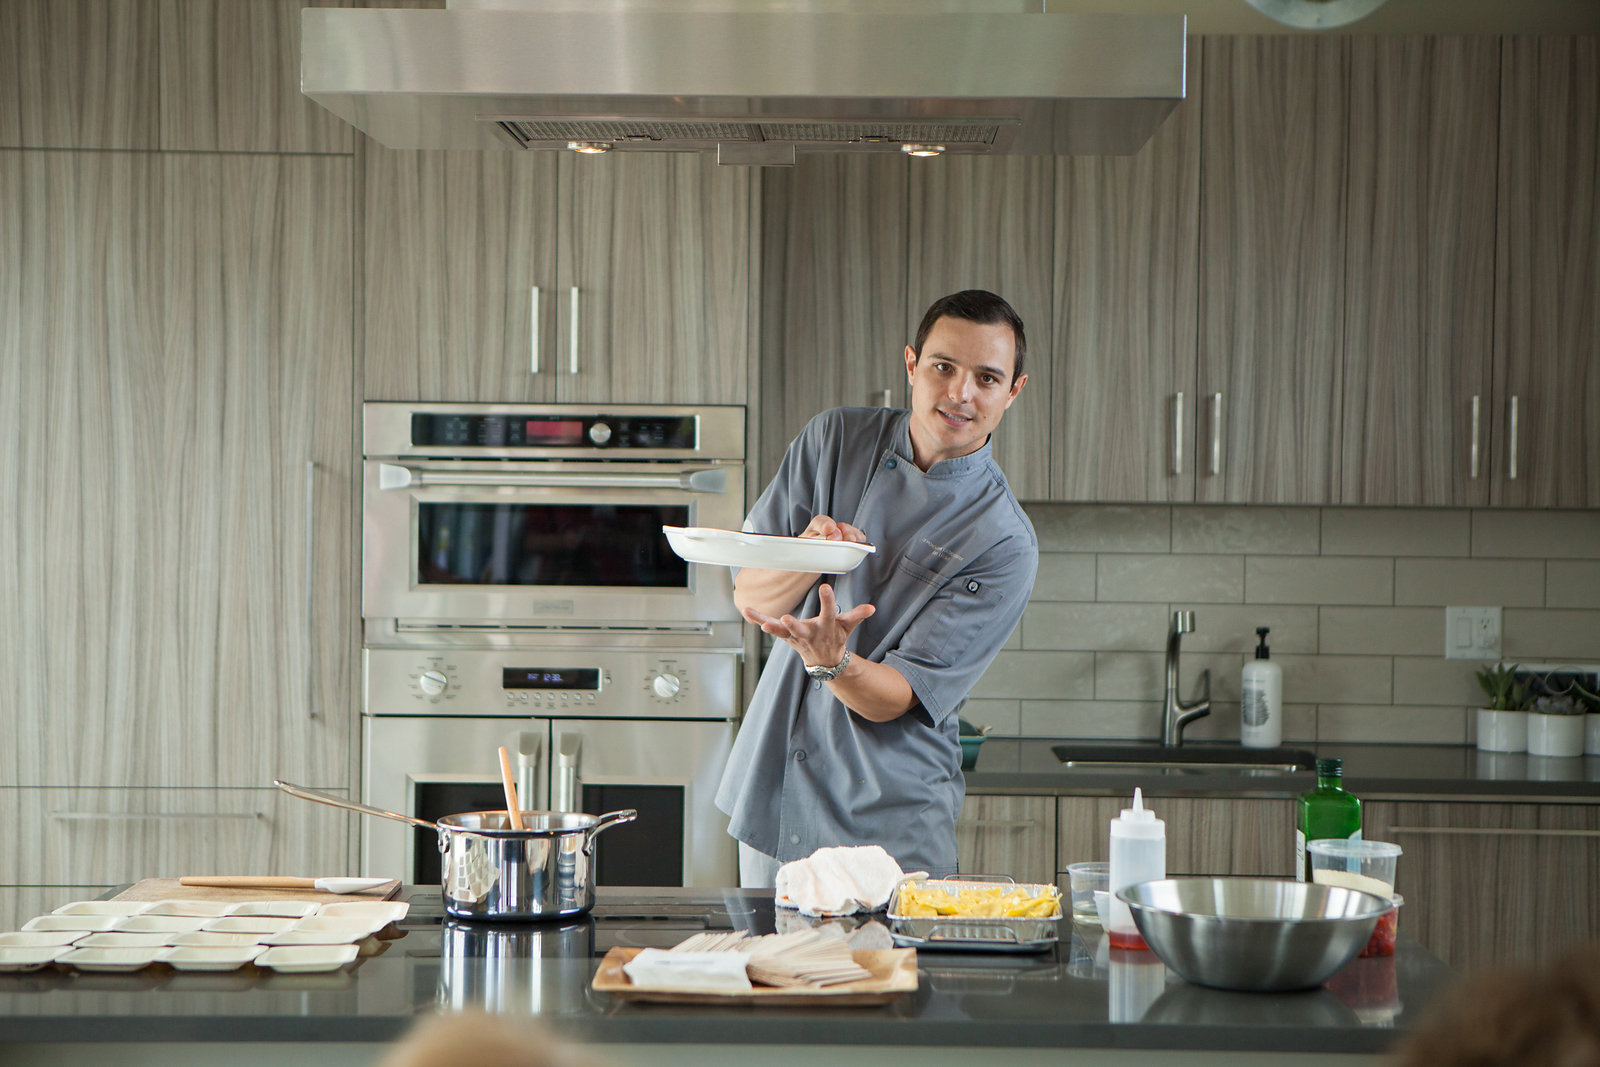 Chef Jon conducts a product demonstration at the Monogram Modern Home.